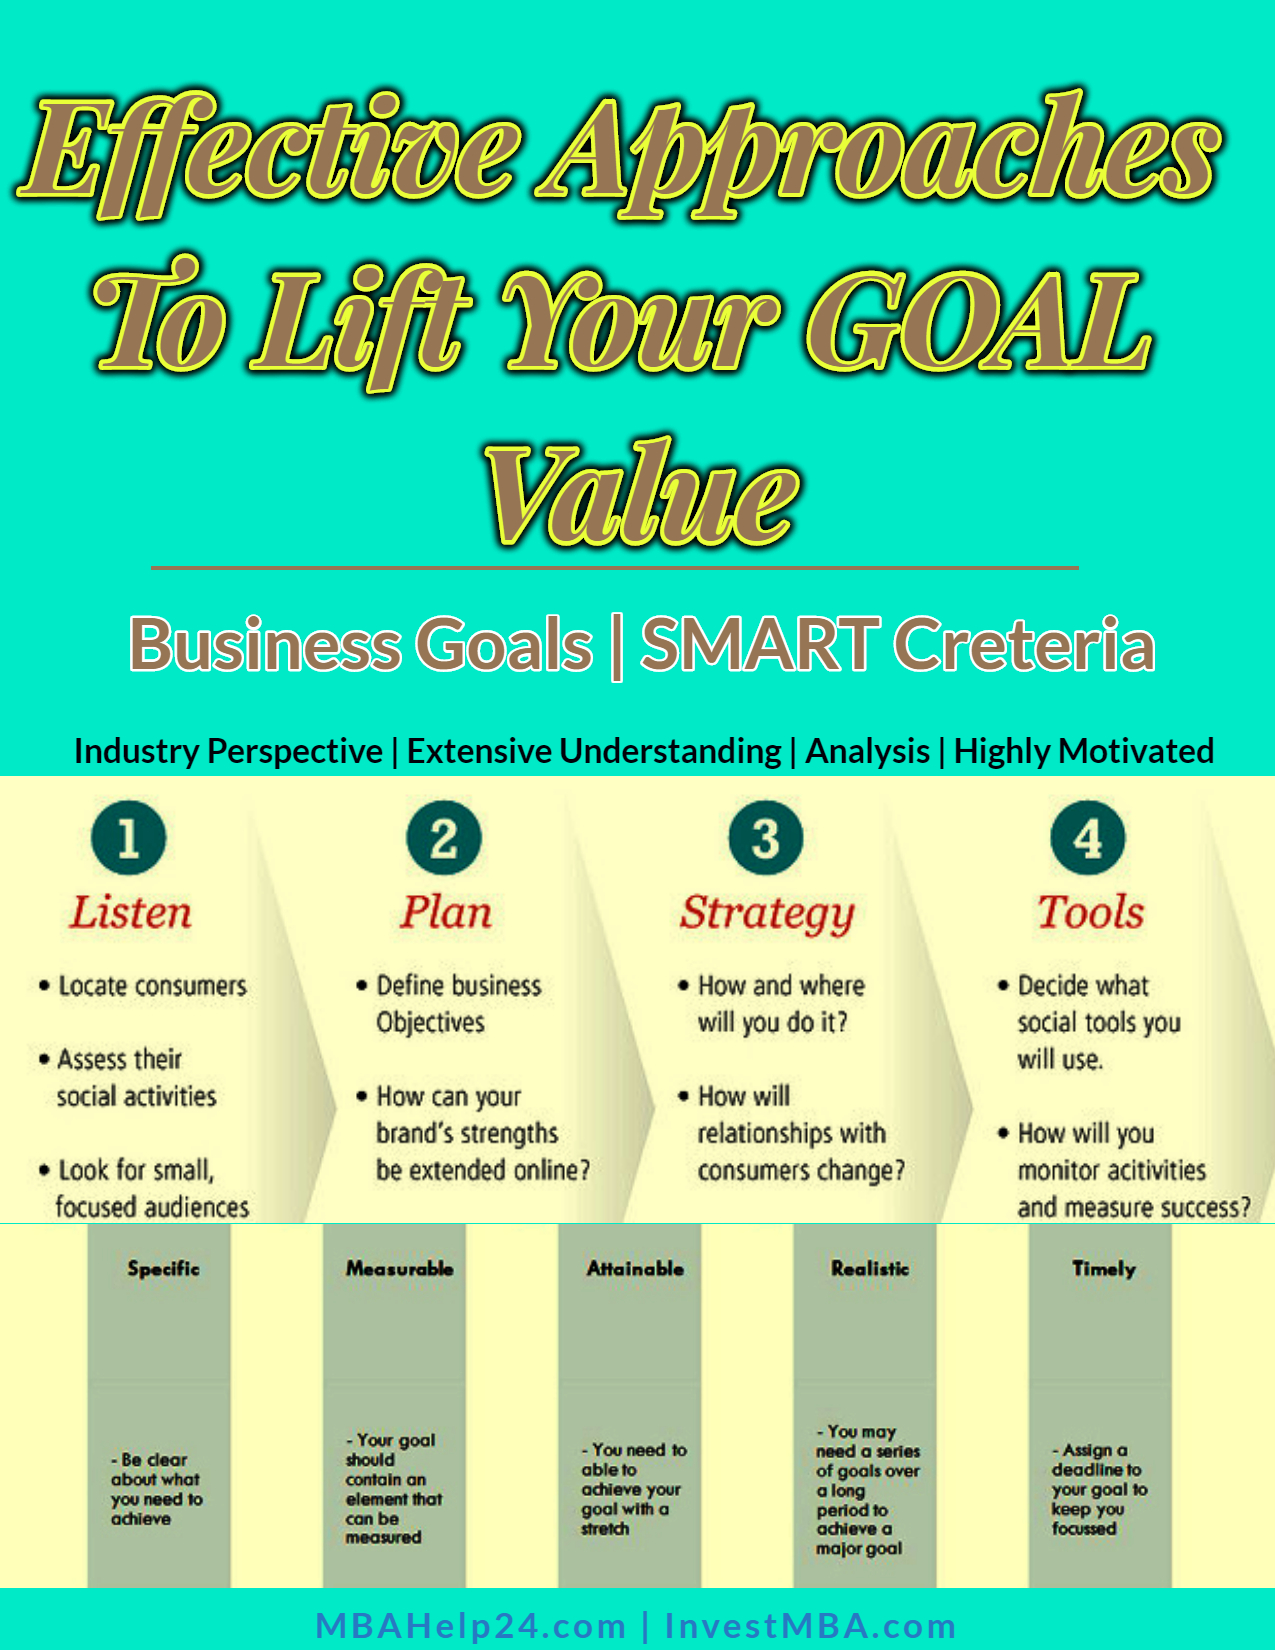 The MOST Effective Approaches To Lifting The Value Of Your Business Goals  goals The MOST Effective Approaches To Lifting The Value Of Your Business Goals The MOST Effective Approaches To Lifting The Value Of Your Business Goals